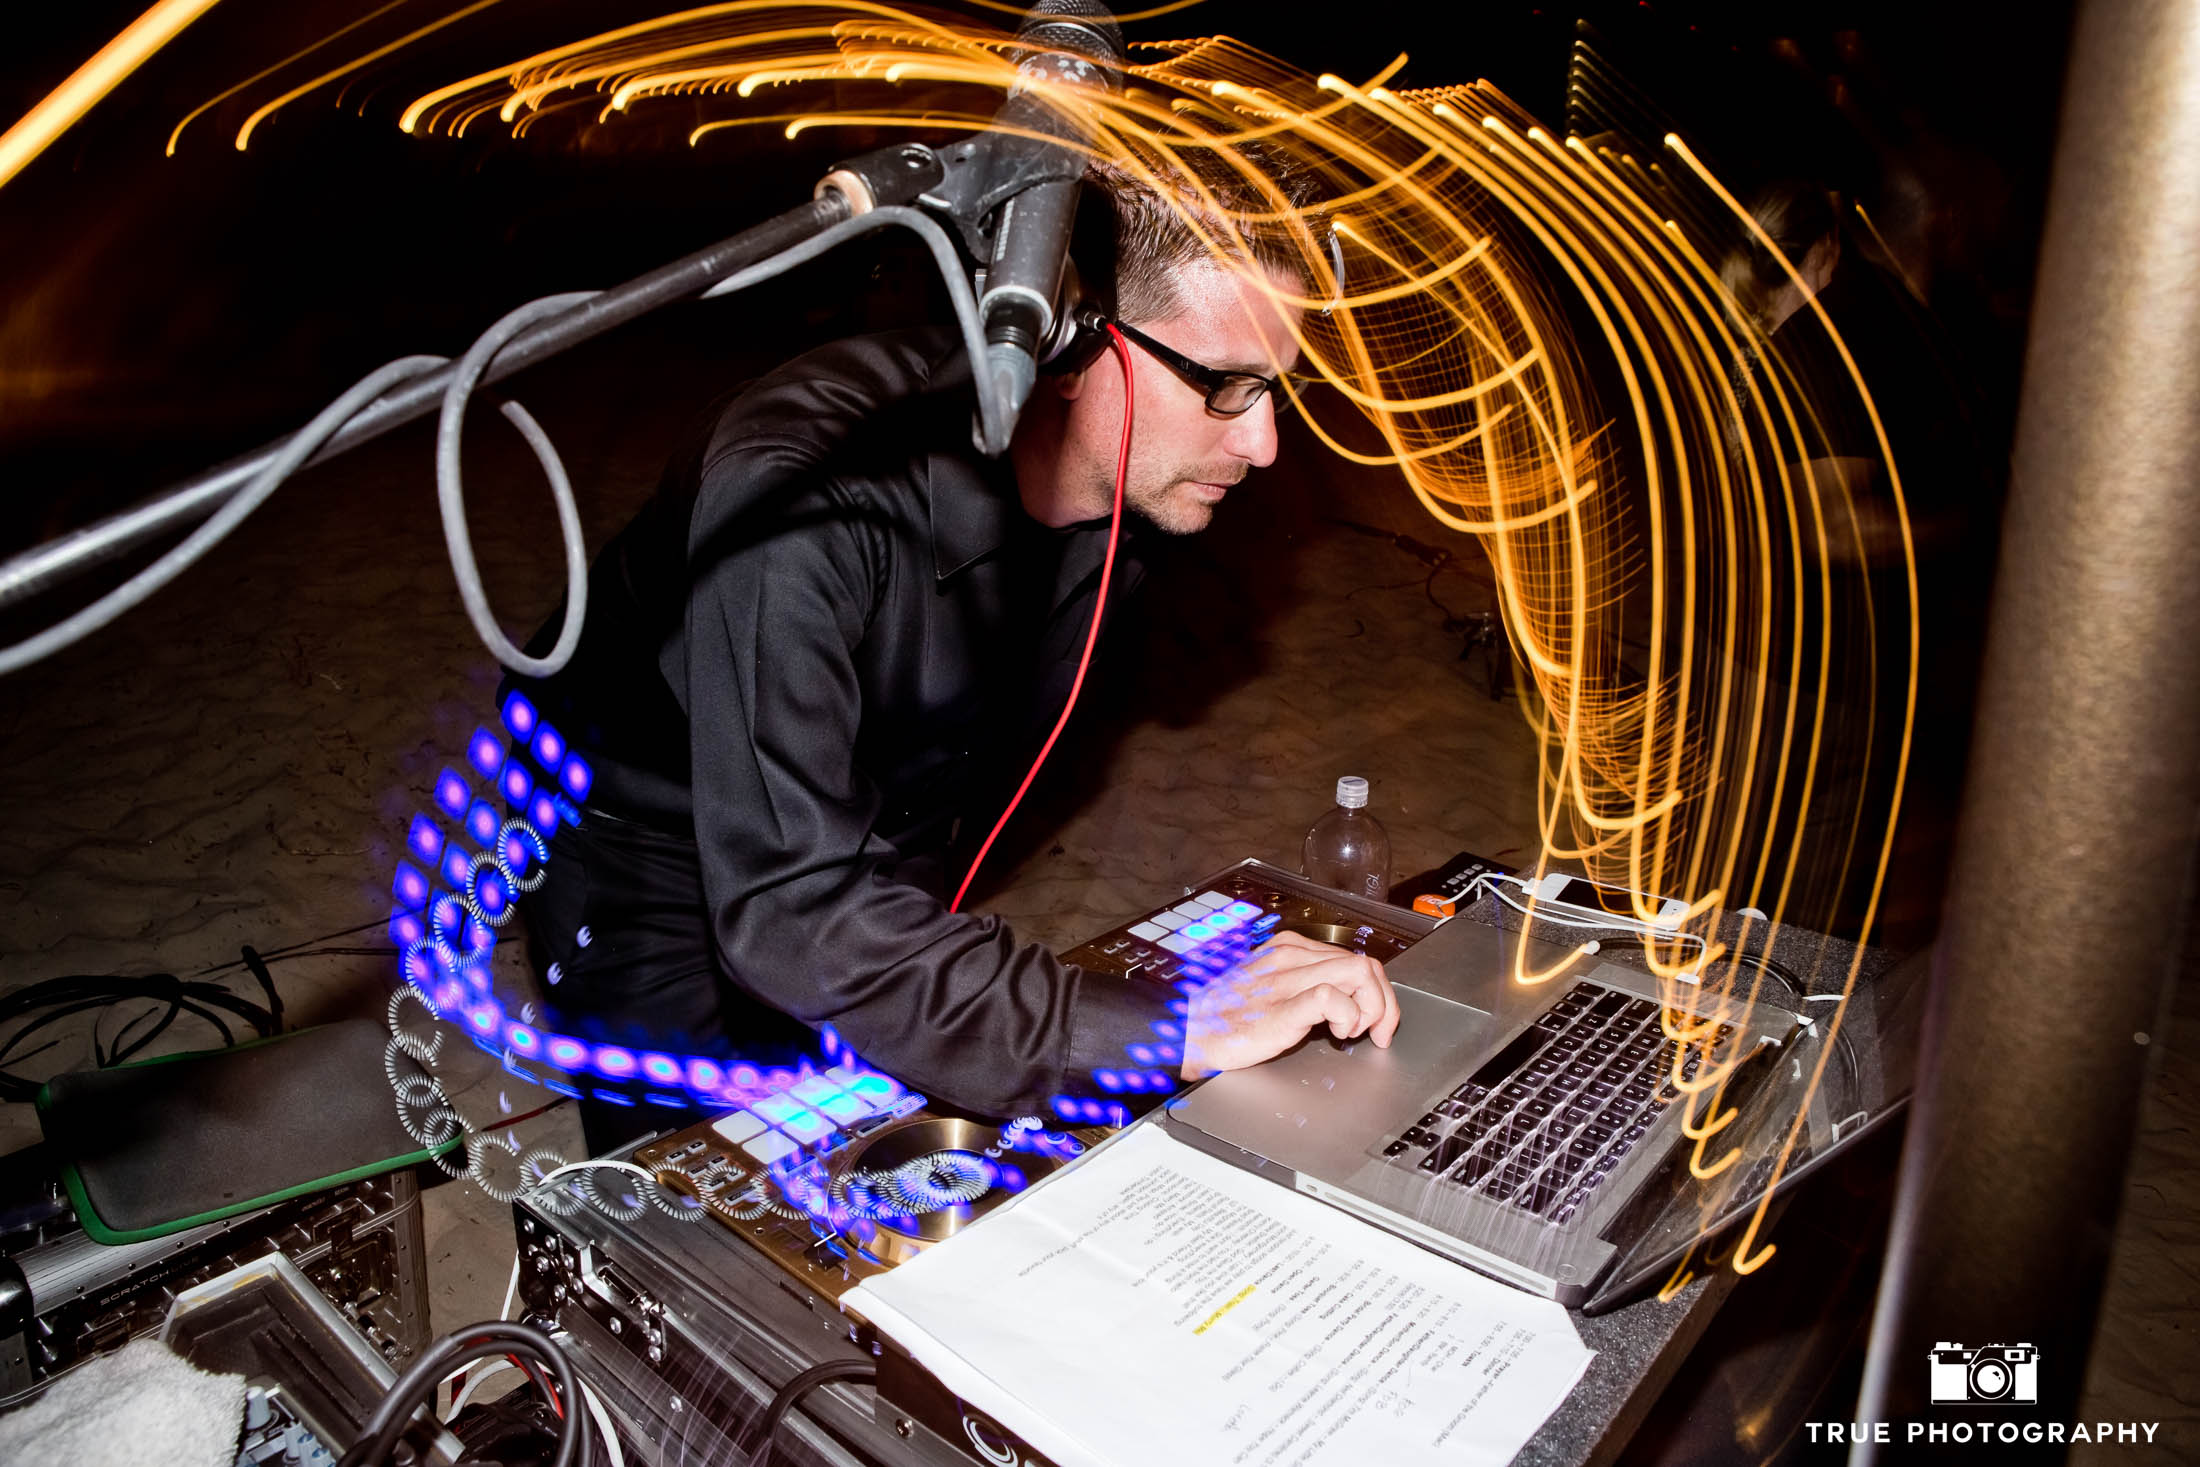 Experimental photo of DJ playing during reception